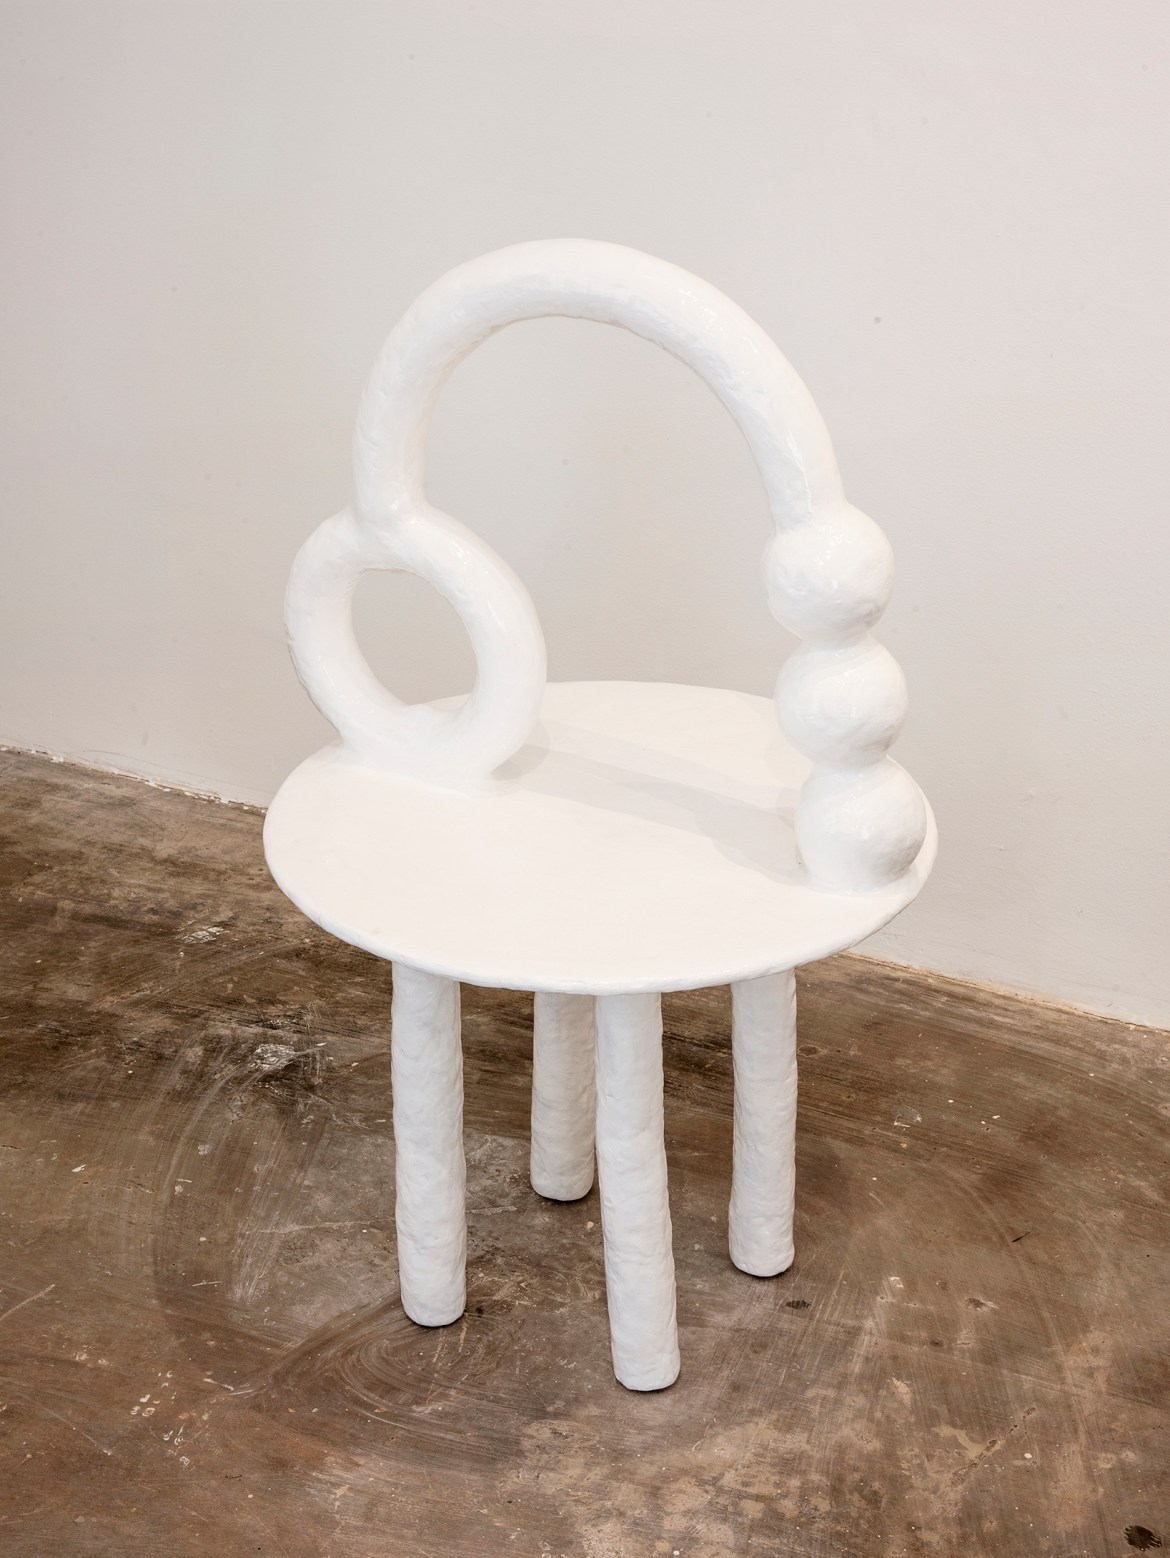 An organic white design chair designed by Brazilian artist Camilla from Anunziata.